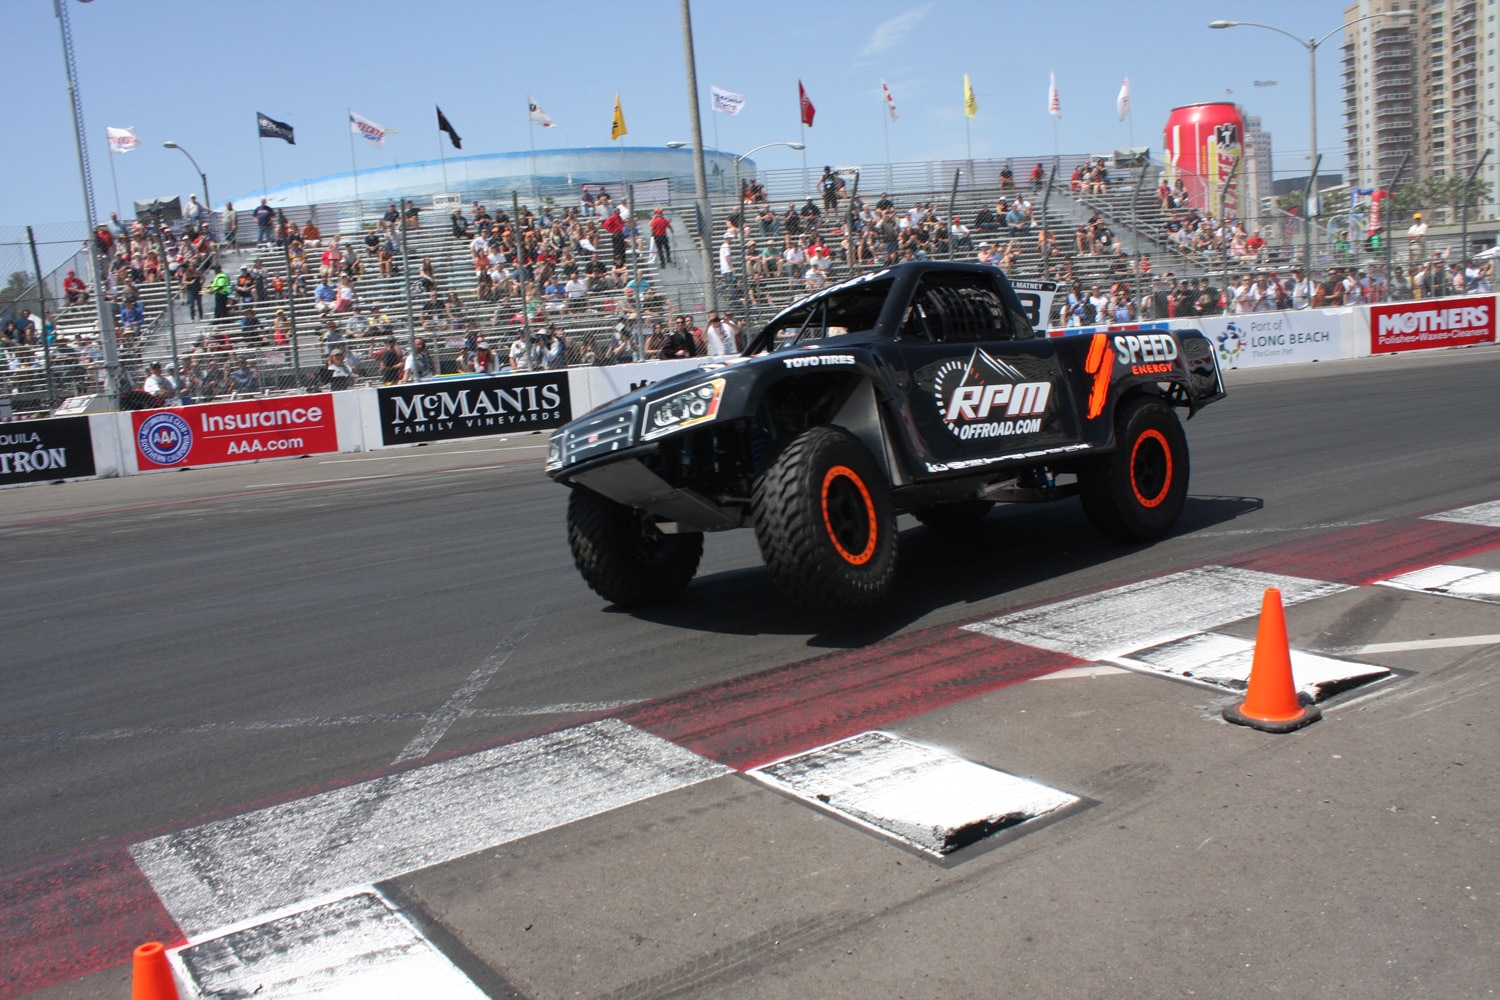 1304OR 30+Robby Gordon SST Stadium Super Trucks 2013 Long Beach Grand Prix